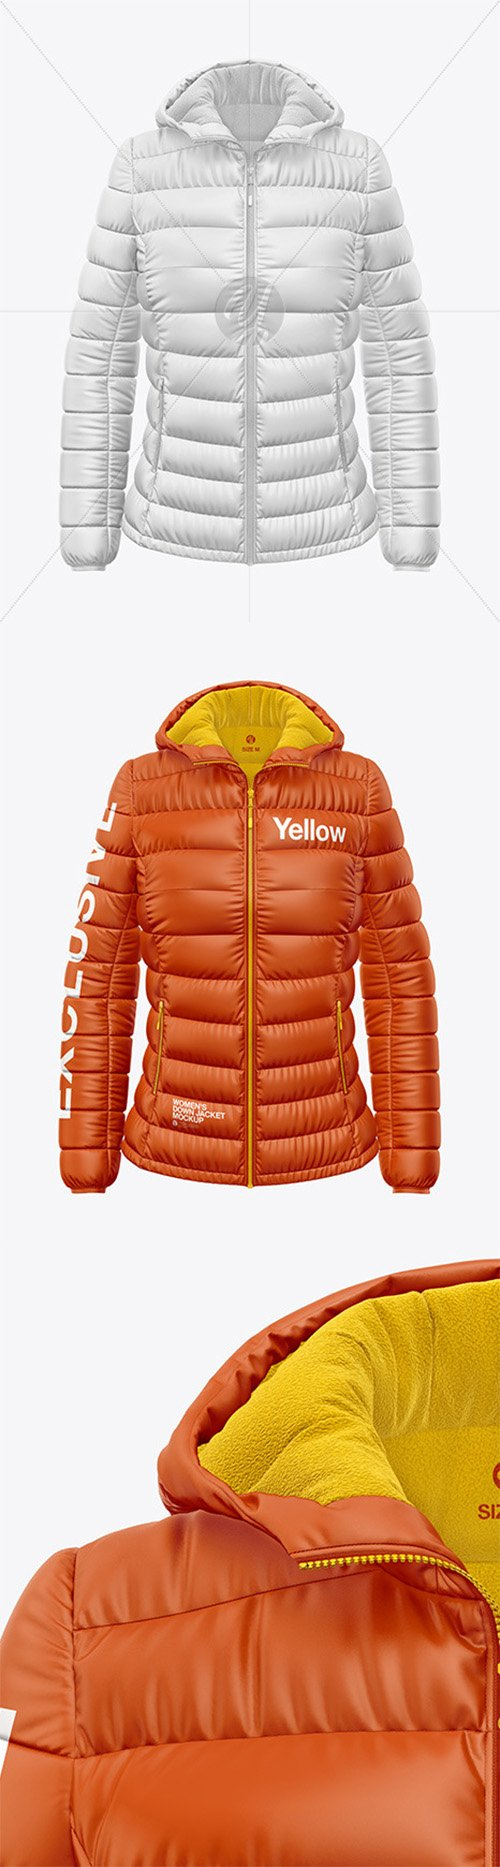 Matte Women's Down Jacket w/Hood Mockup - Front View 52376